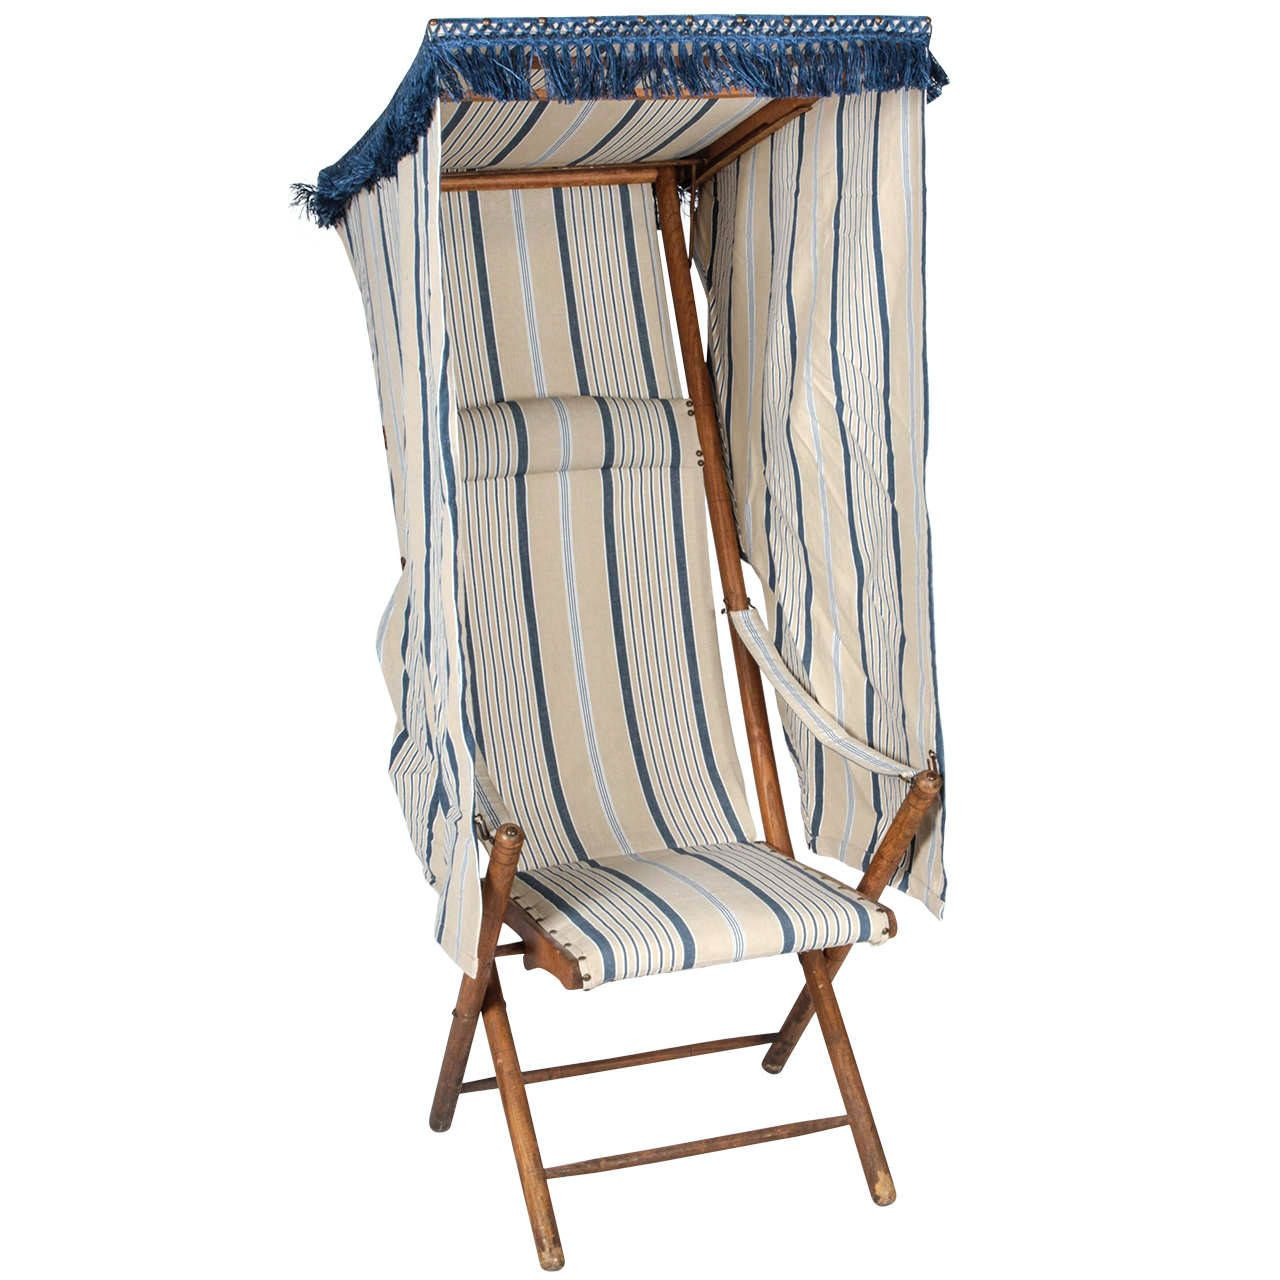 Canopy chair dimensions - French Beach Chair With Canopy